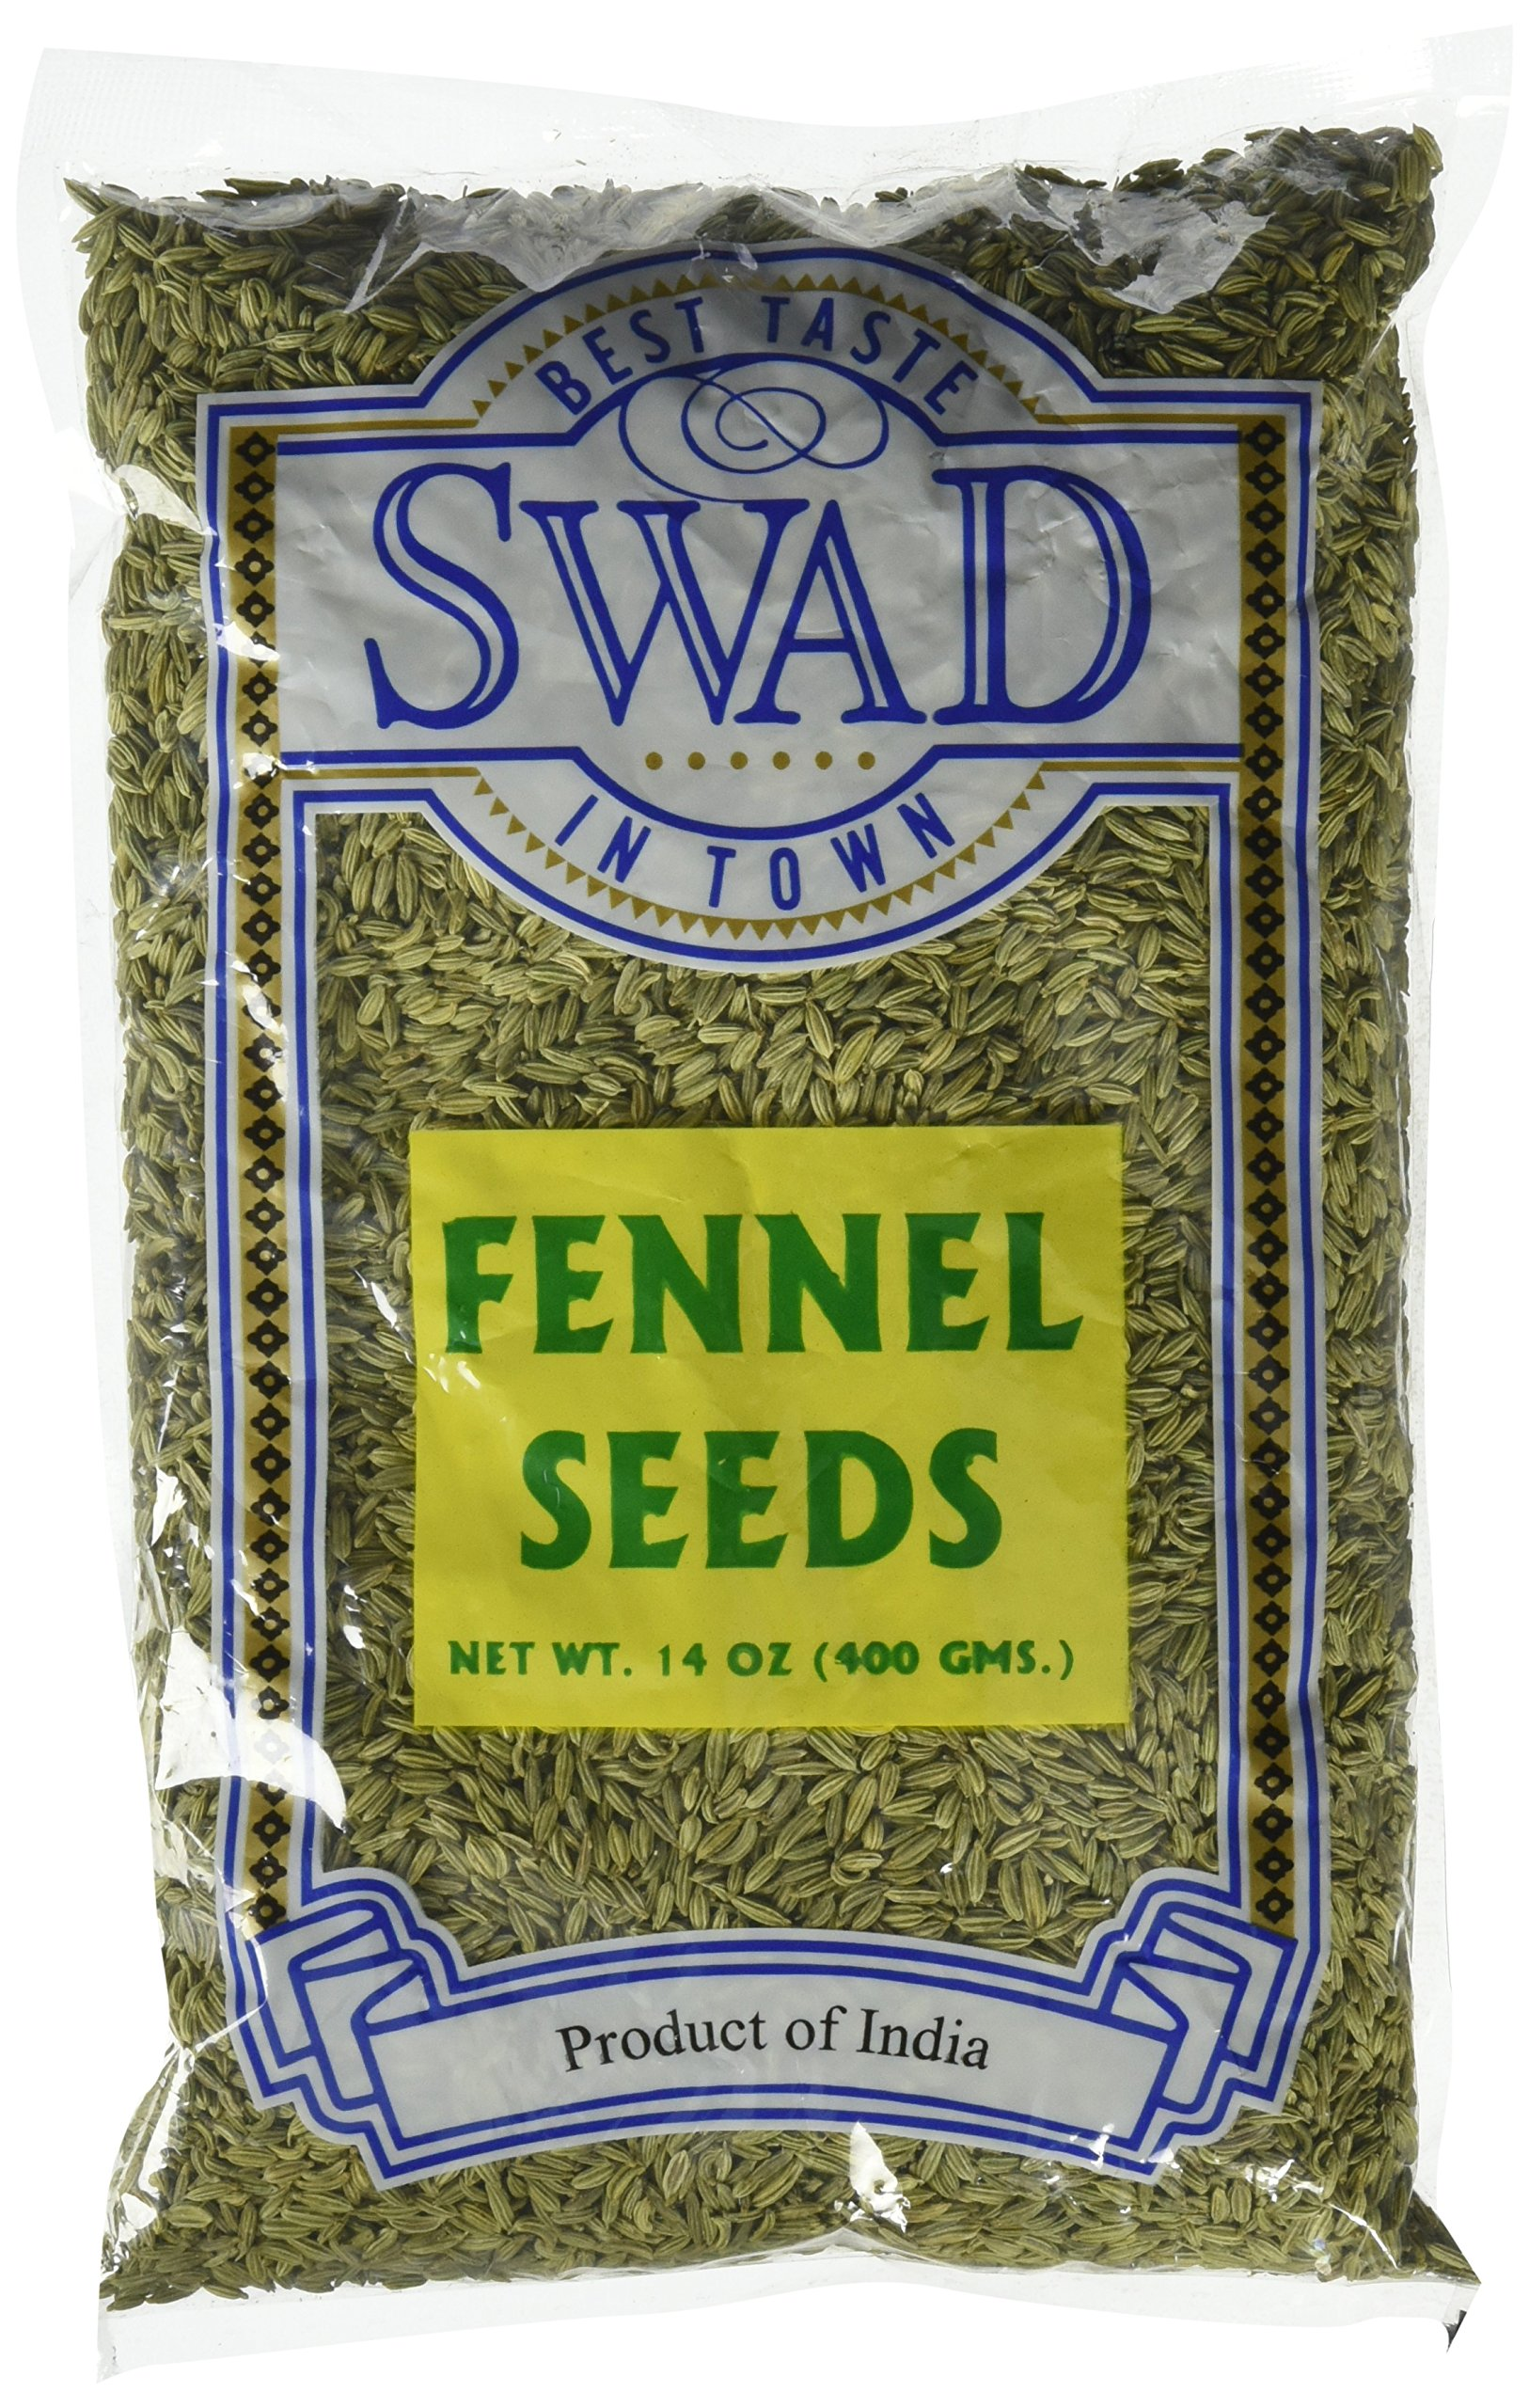 Great Bazaar Swad Fennel Seeds, 14 Ounce